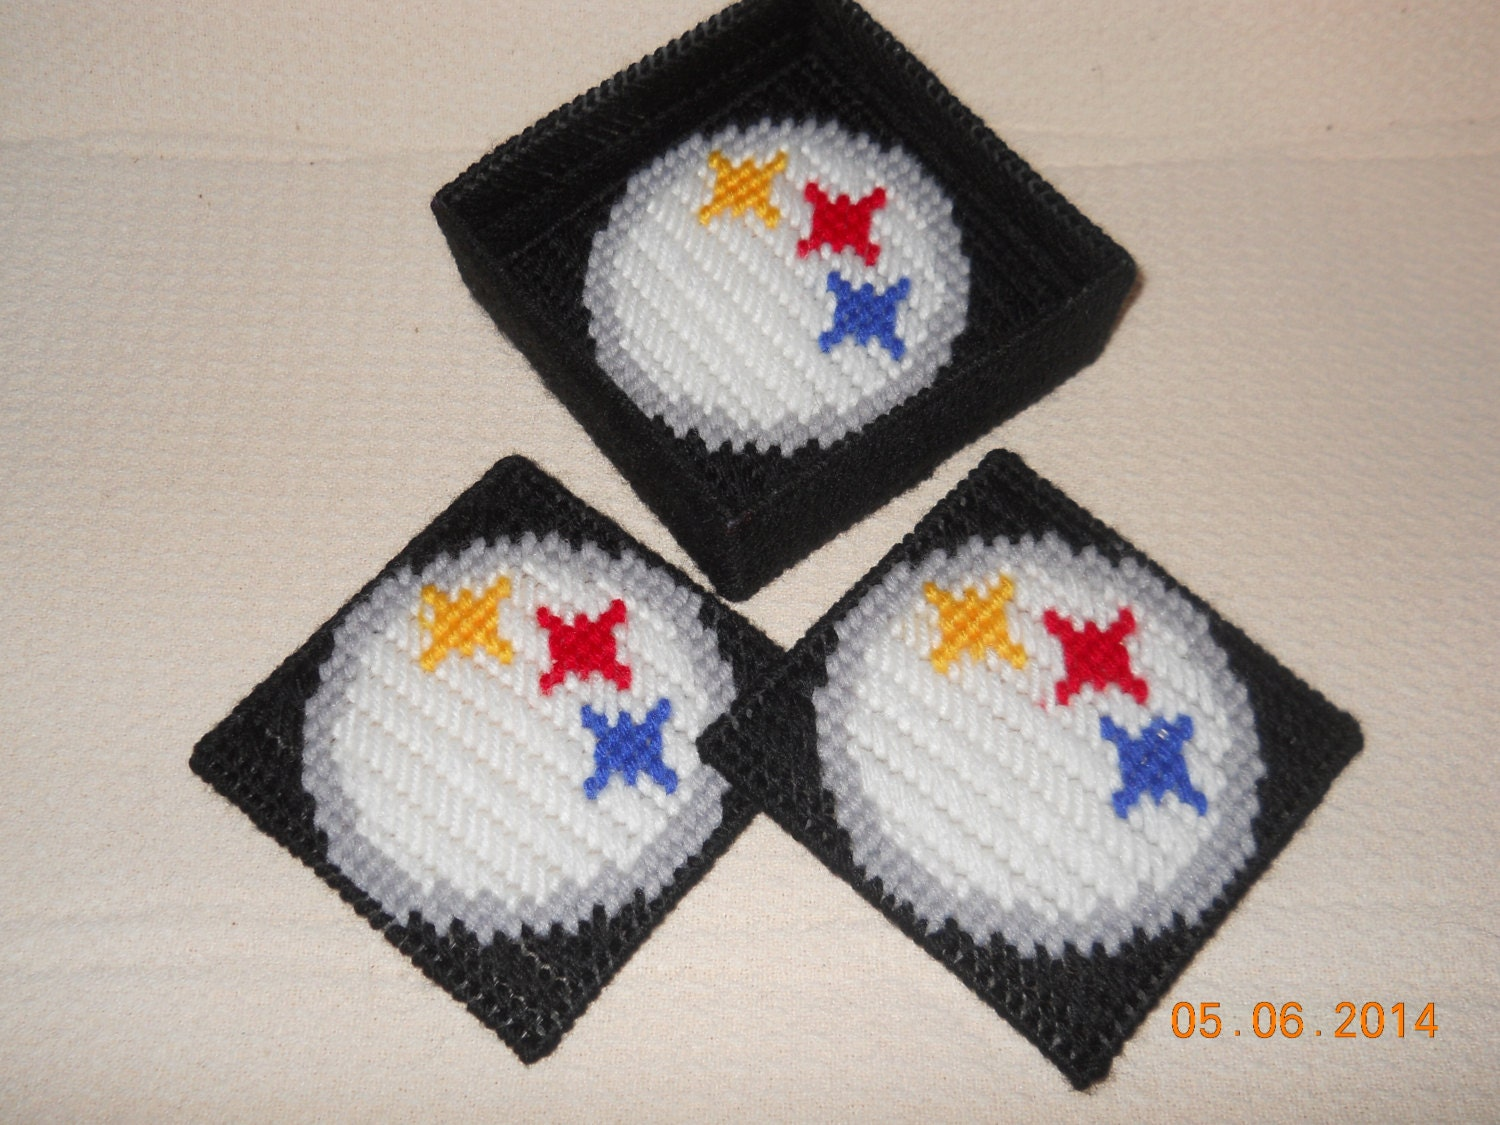 Steelers Coasters in Plastic canvas